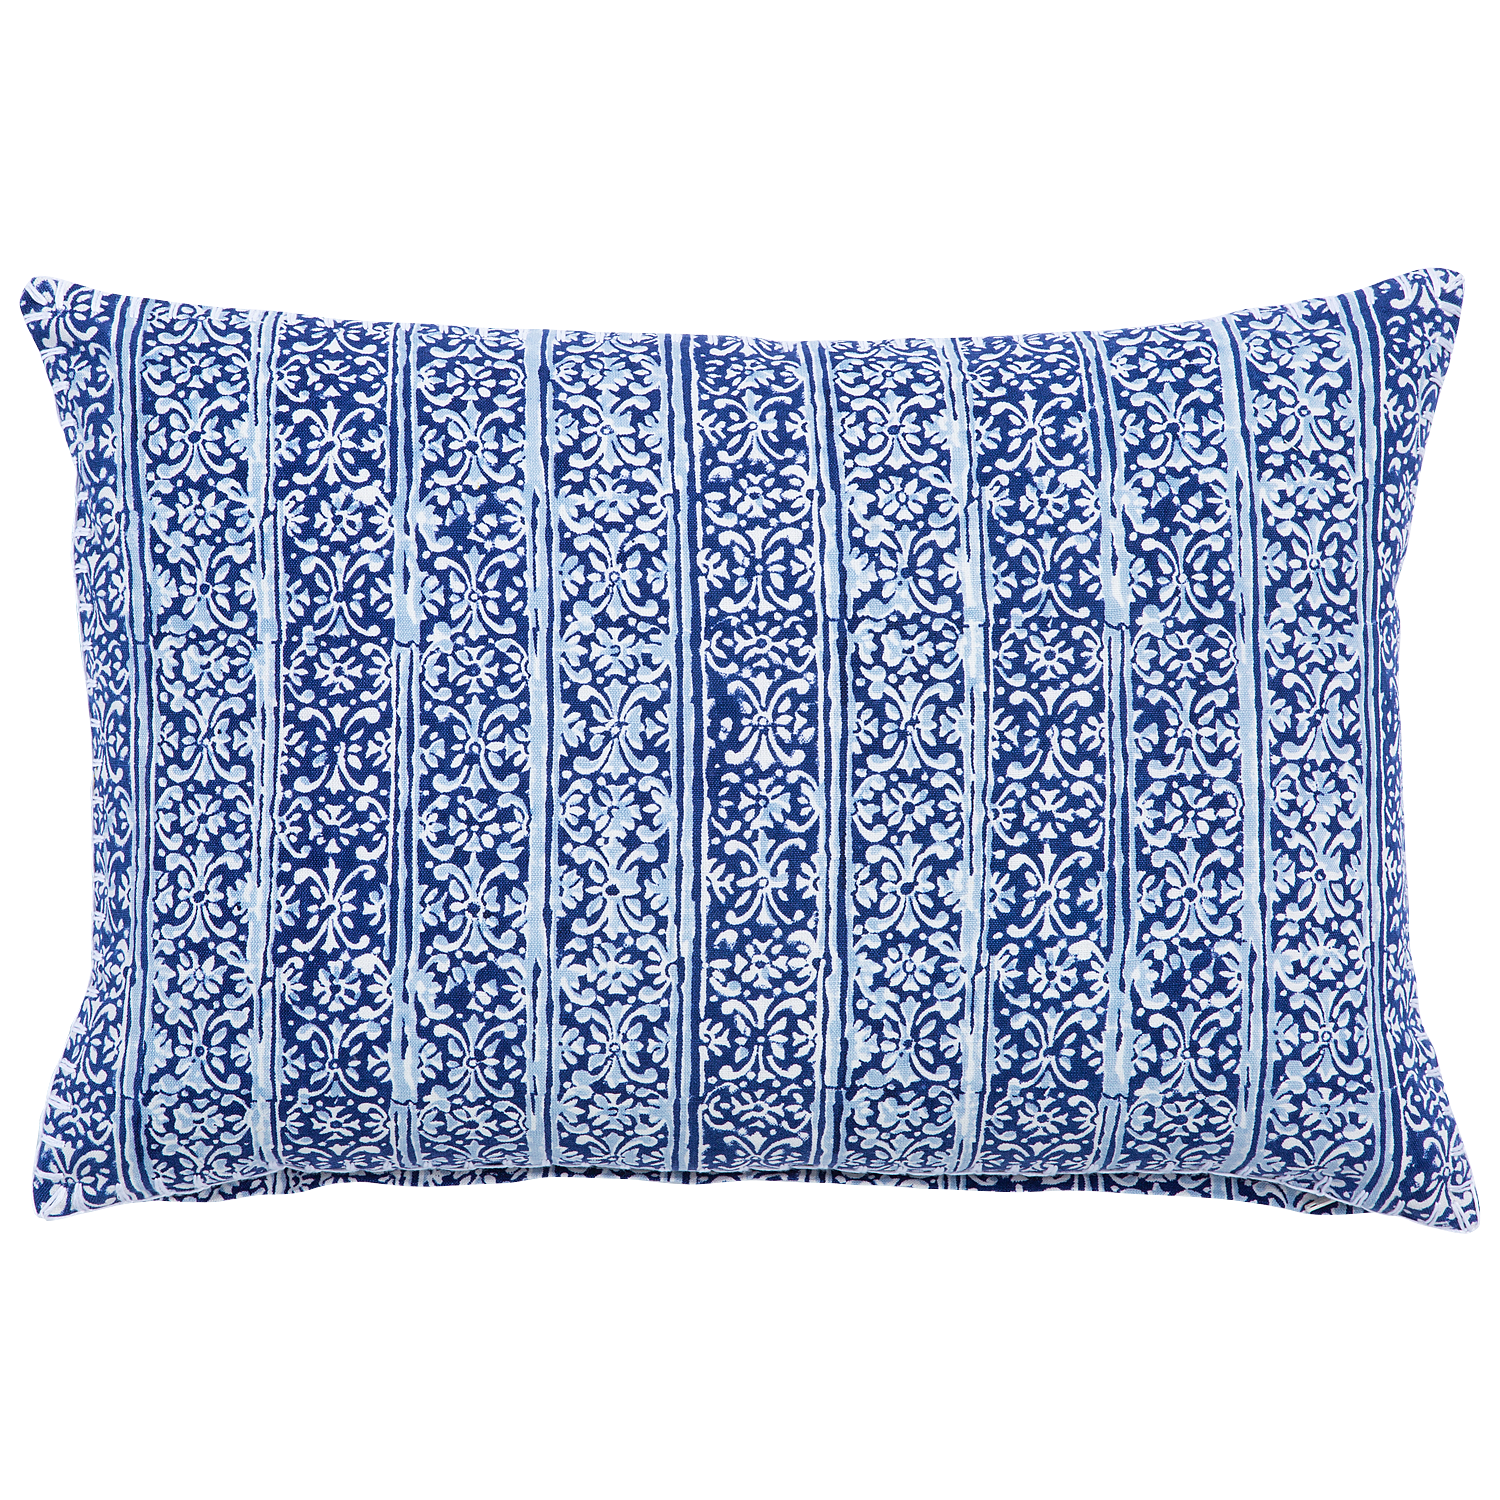 Bila Lapis Decorative Pillow